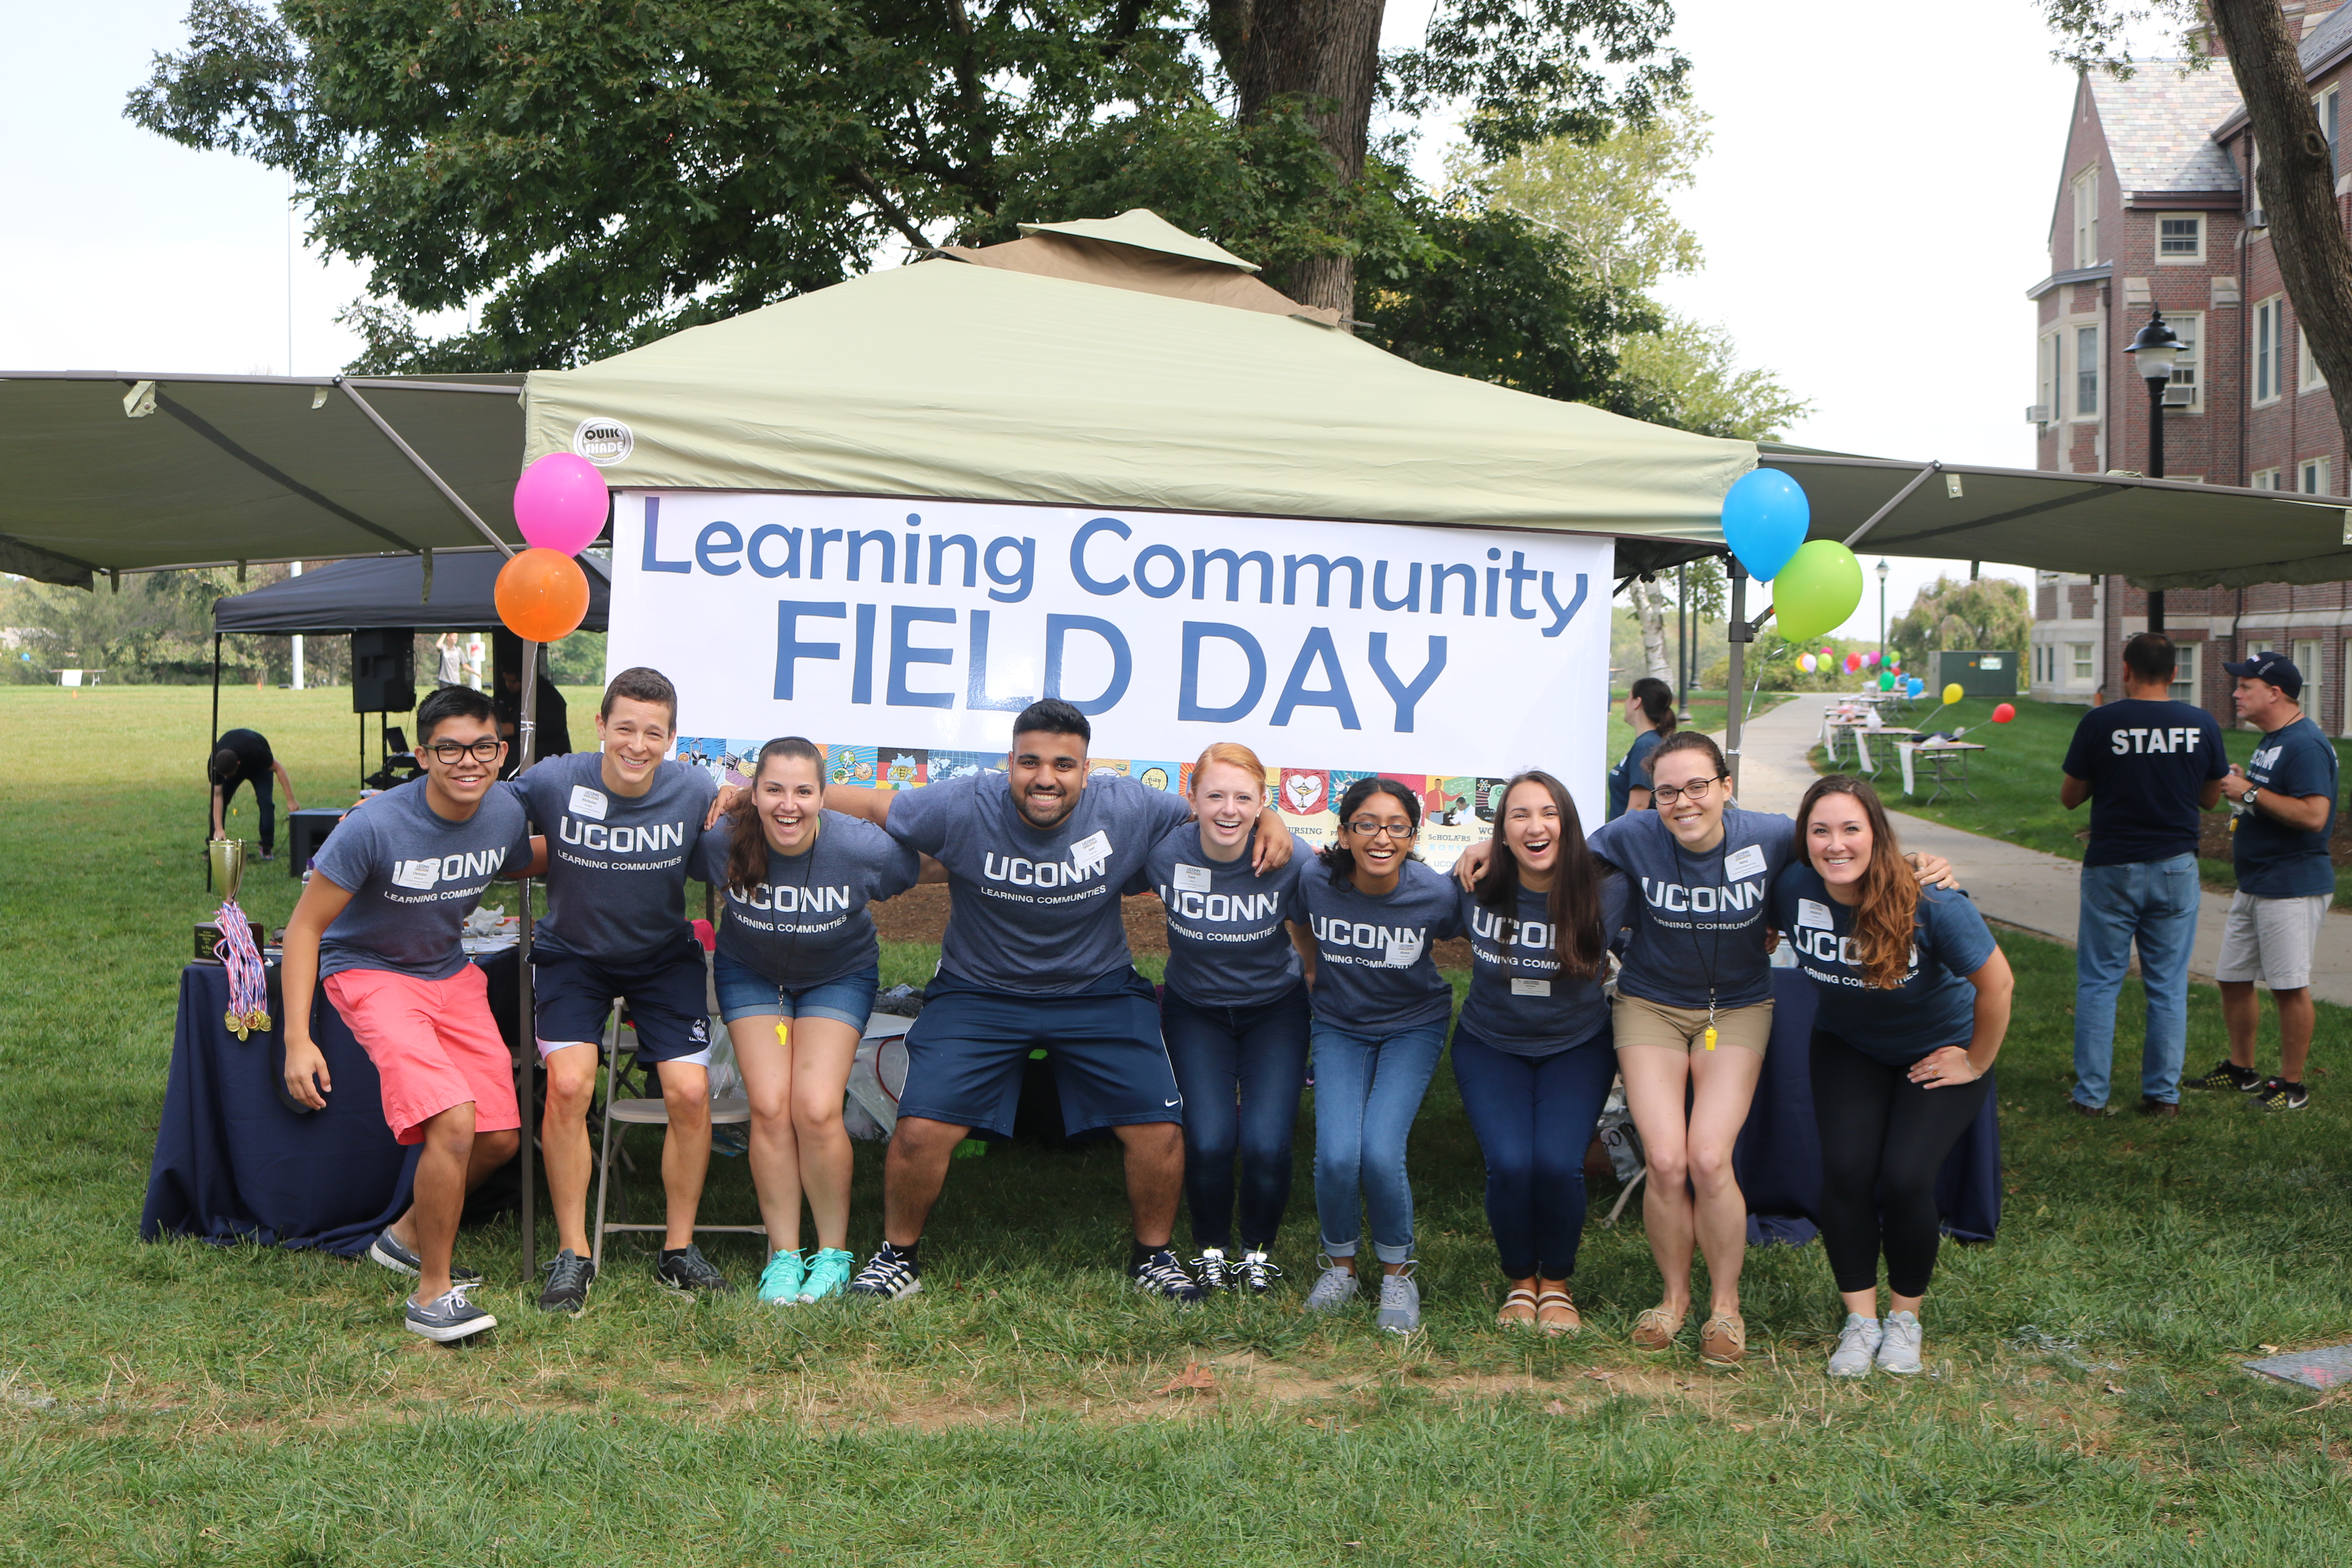 Learning Community Council